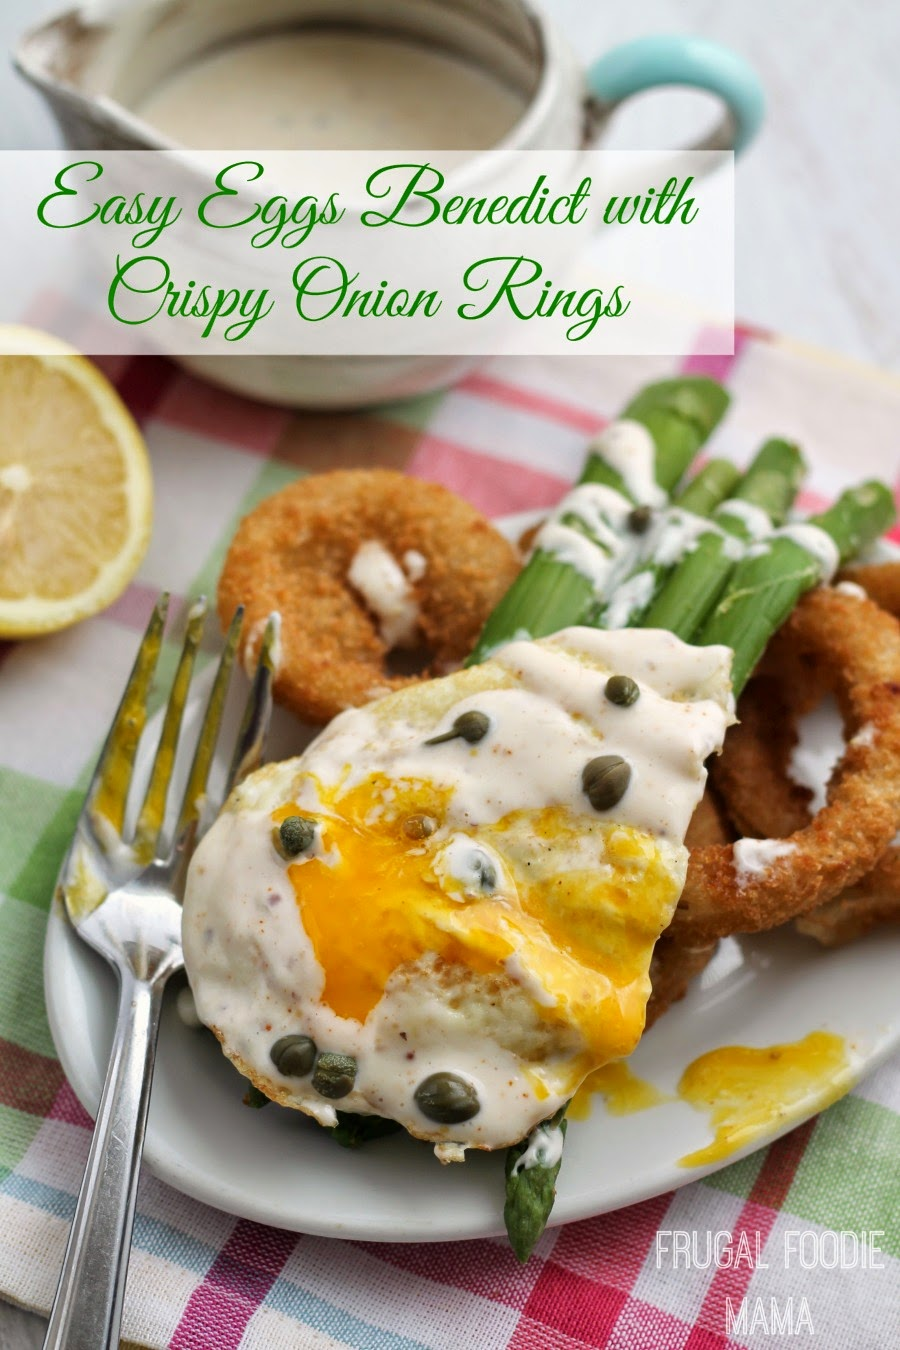 Easy Eggs Benedict with Crispy Onion Rings- crispy onion rings are topped with asparagus, over medium eggs, a drizzle of a quick mock hollandaise sauce, and a sprinkle of capers in this easy brunch recipe #SpringIntoFlavor #ad